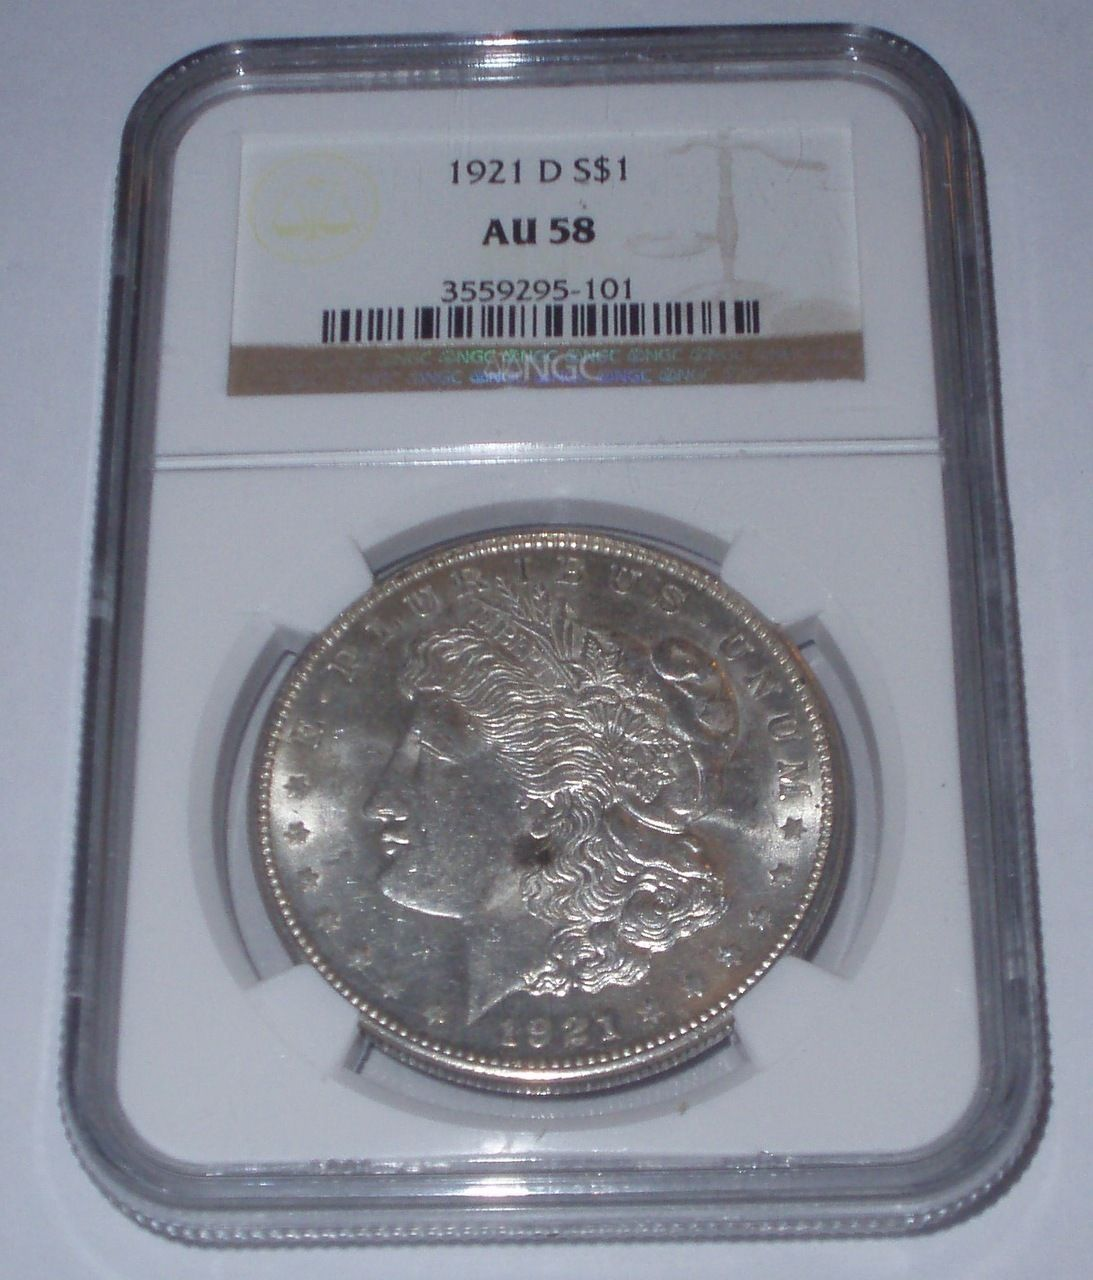 1921-D Morgan Silver Dollar NGC AU 58, $41.00 With Free